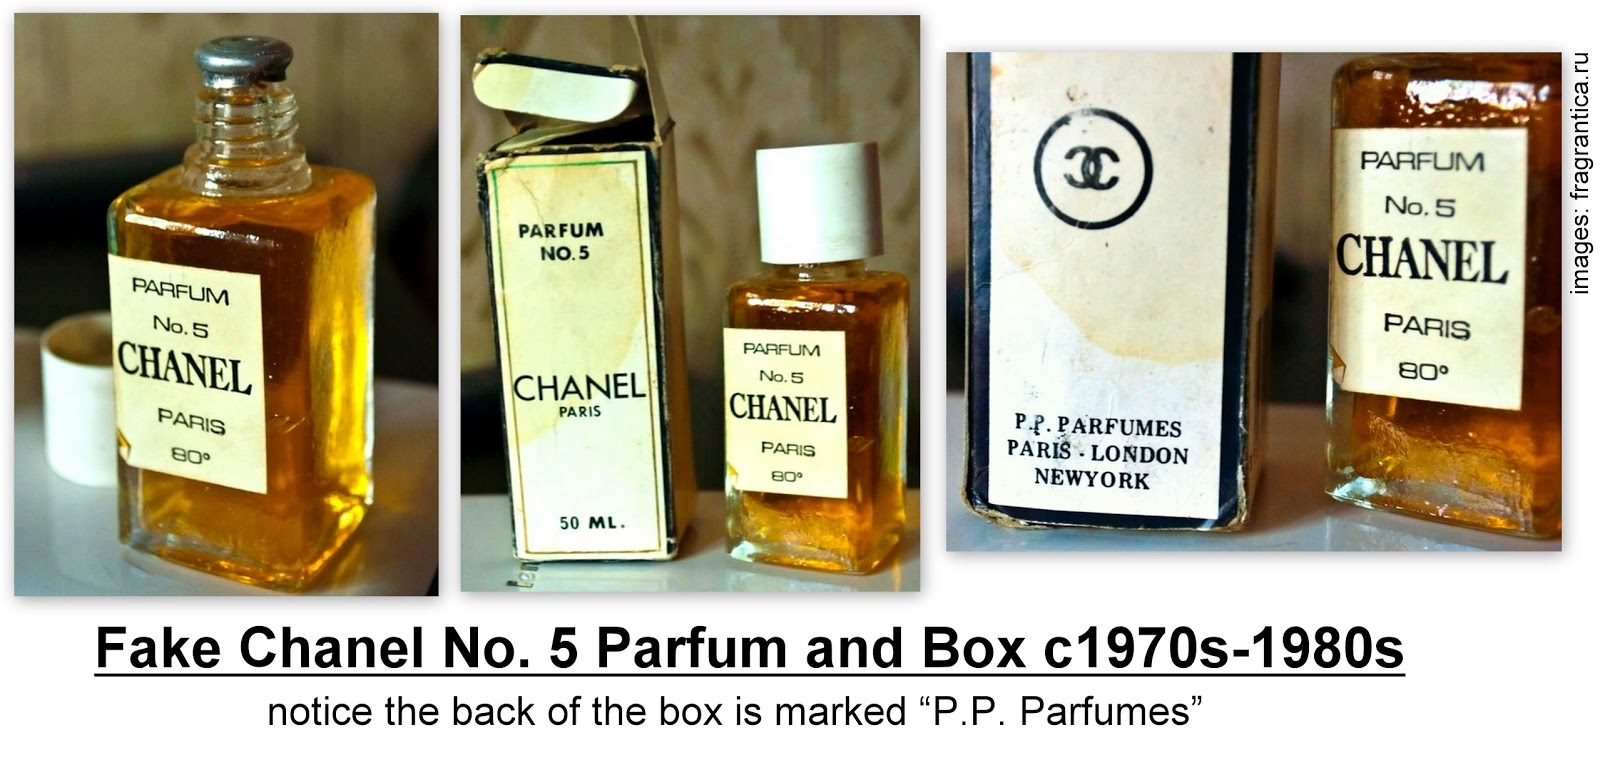 449d9442f74 Most sellers have no idea their perfume is a counterfeit